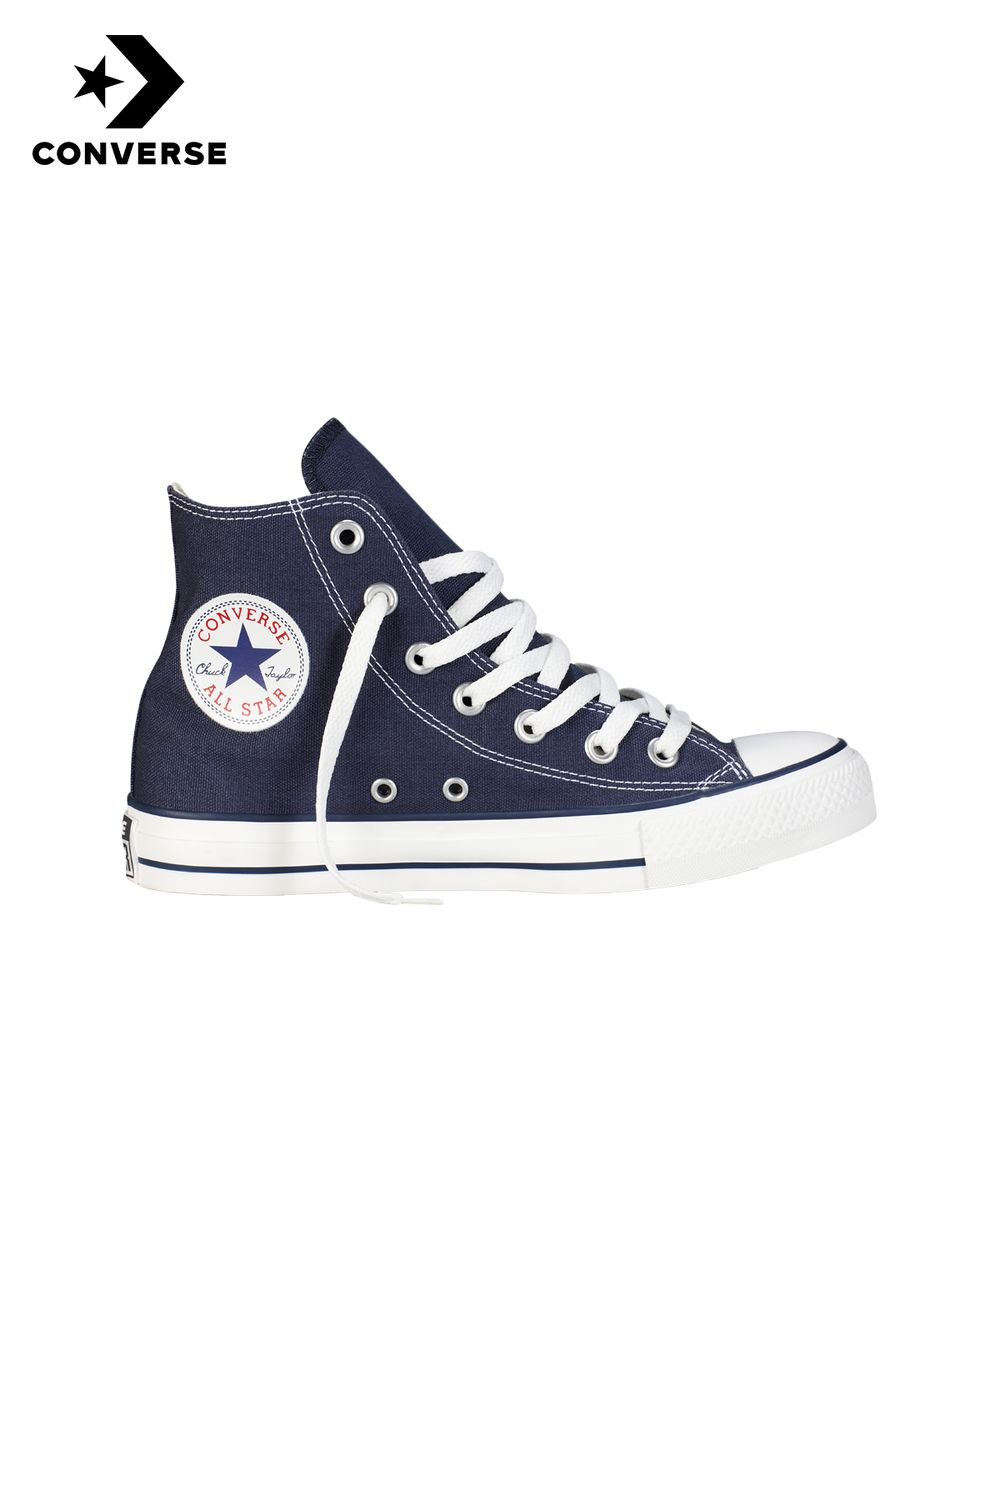 aac1c765b49 Sneakers in de sale | Fashionchick | Nu afgeprijsd